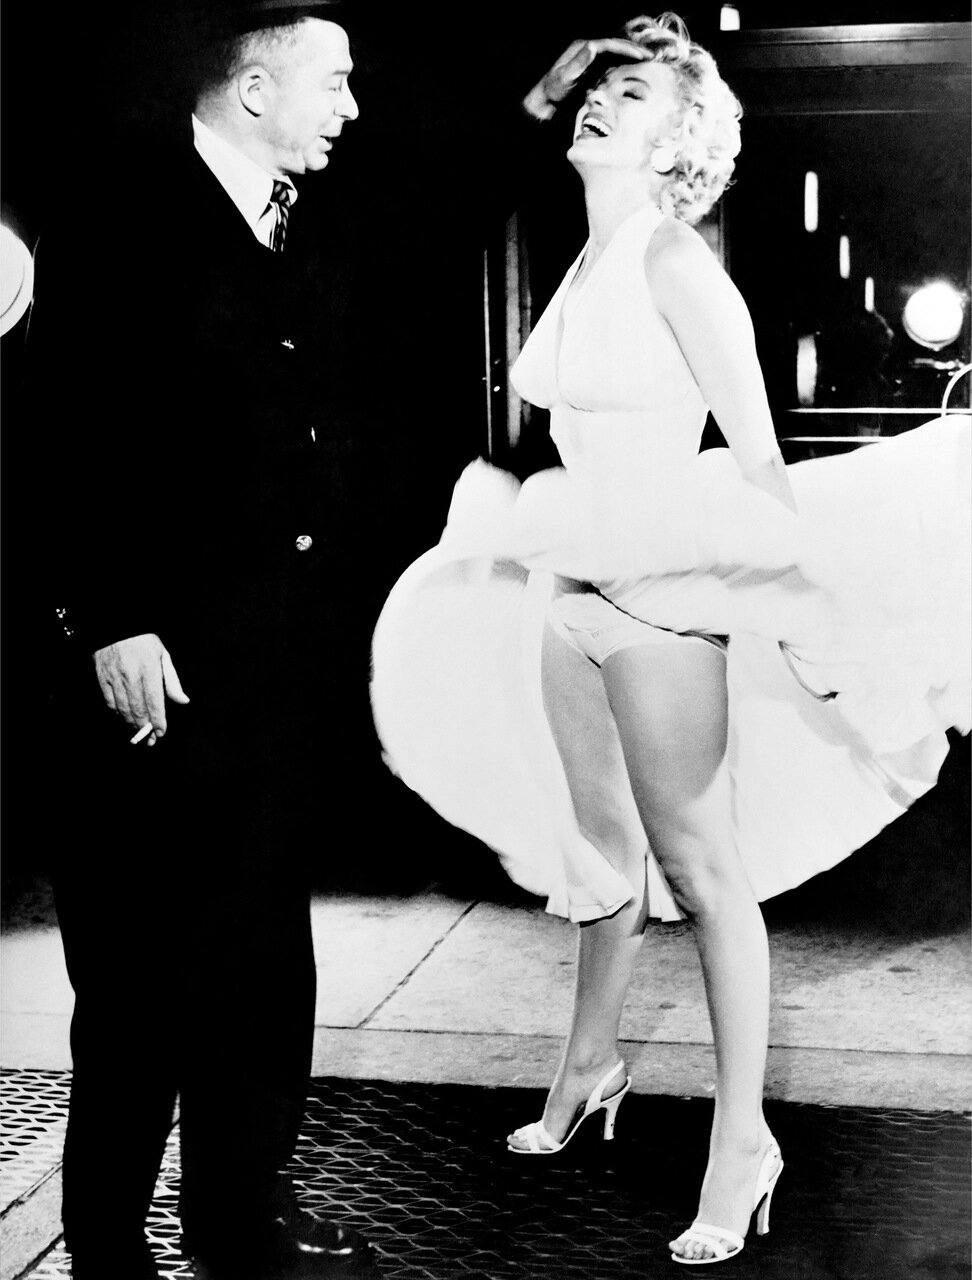 LOS ANGELES - JUNE 3: Actress Marilyn Monroe stand over an air vent which causes her dress to fly up as director Billy Wilder fixes her hair during filiming of the movie 'The Seven Year Itch' which was released on June 3, 1955. (Photo by Frank Worth, Cour